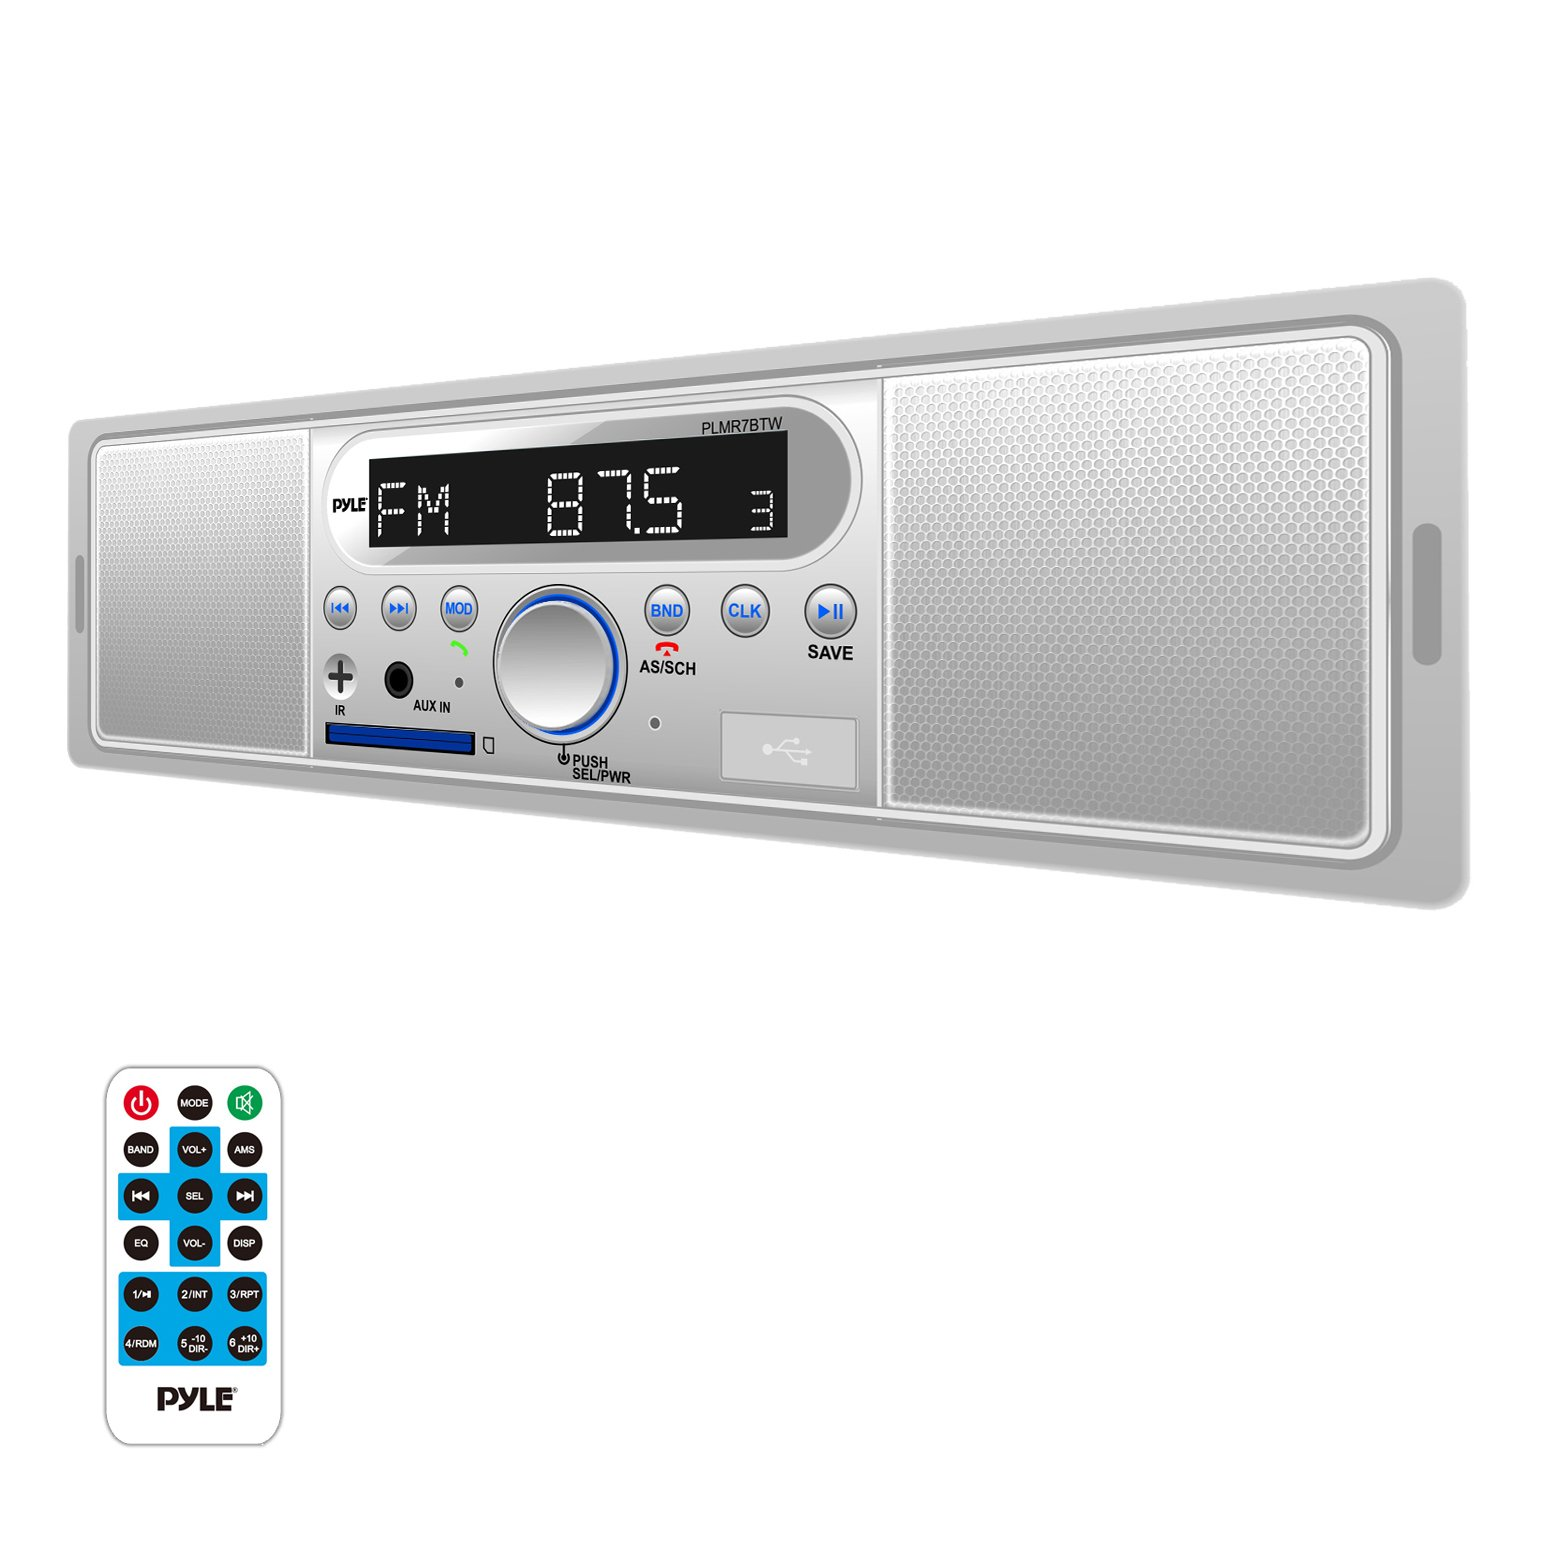 Pyle Plmr7btw Marine Single-din Mechless Marine Am fm Receiver With Built-in Speakers & Bluetooth[r] by Pyle